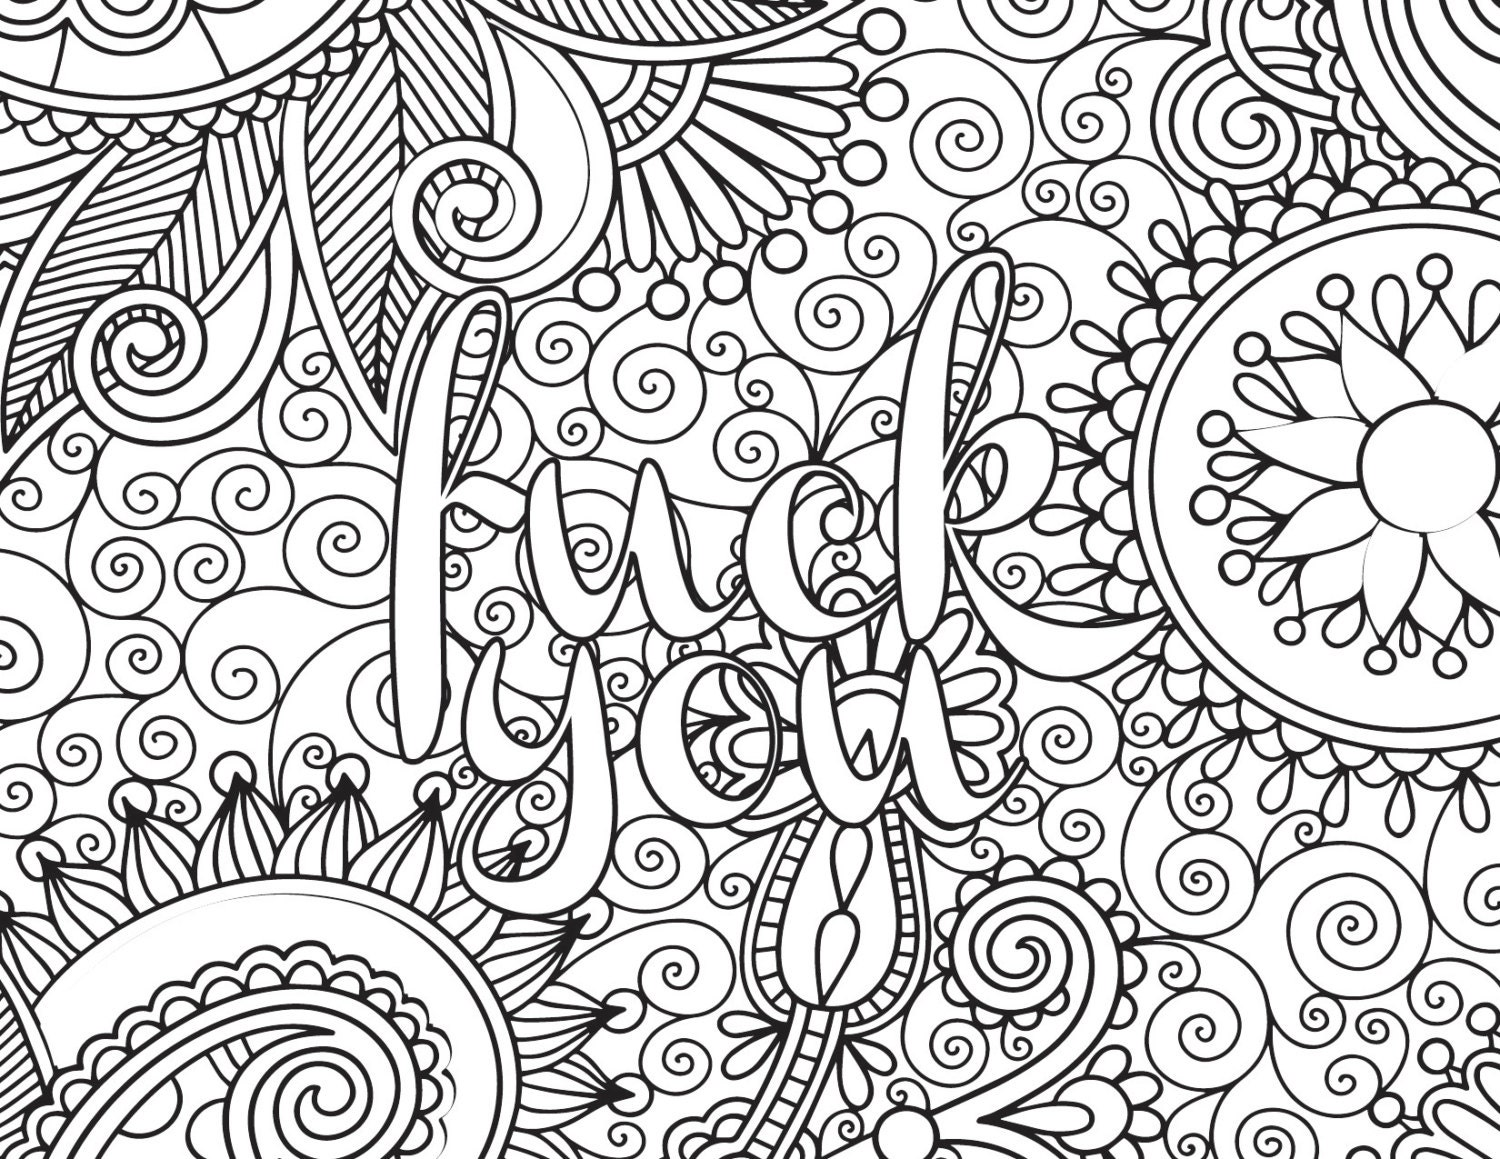 Printable Swear Coloring Pages